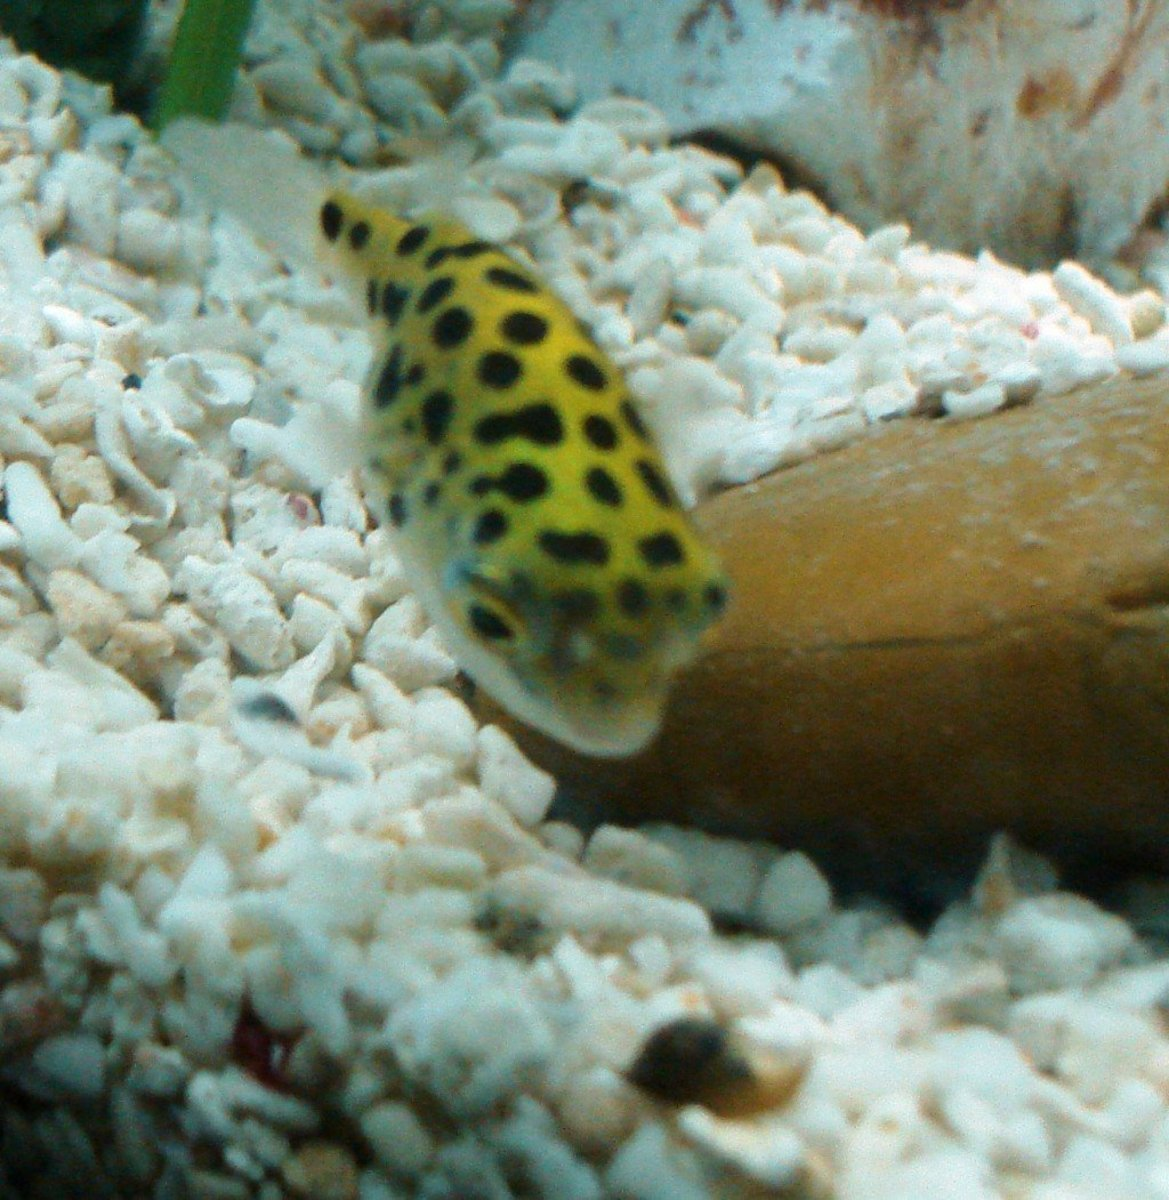 Green spotted puffer fish care feeding and tank setup for Puffer fish aquarium